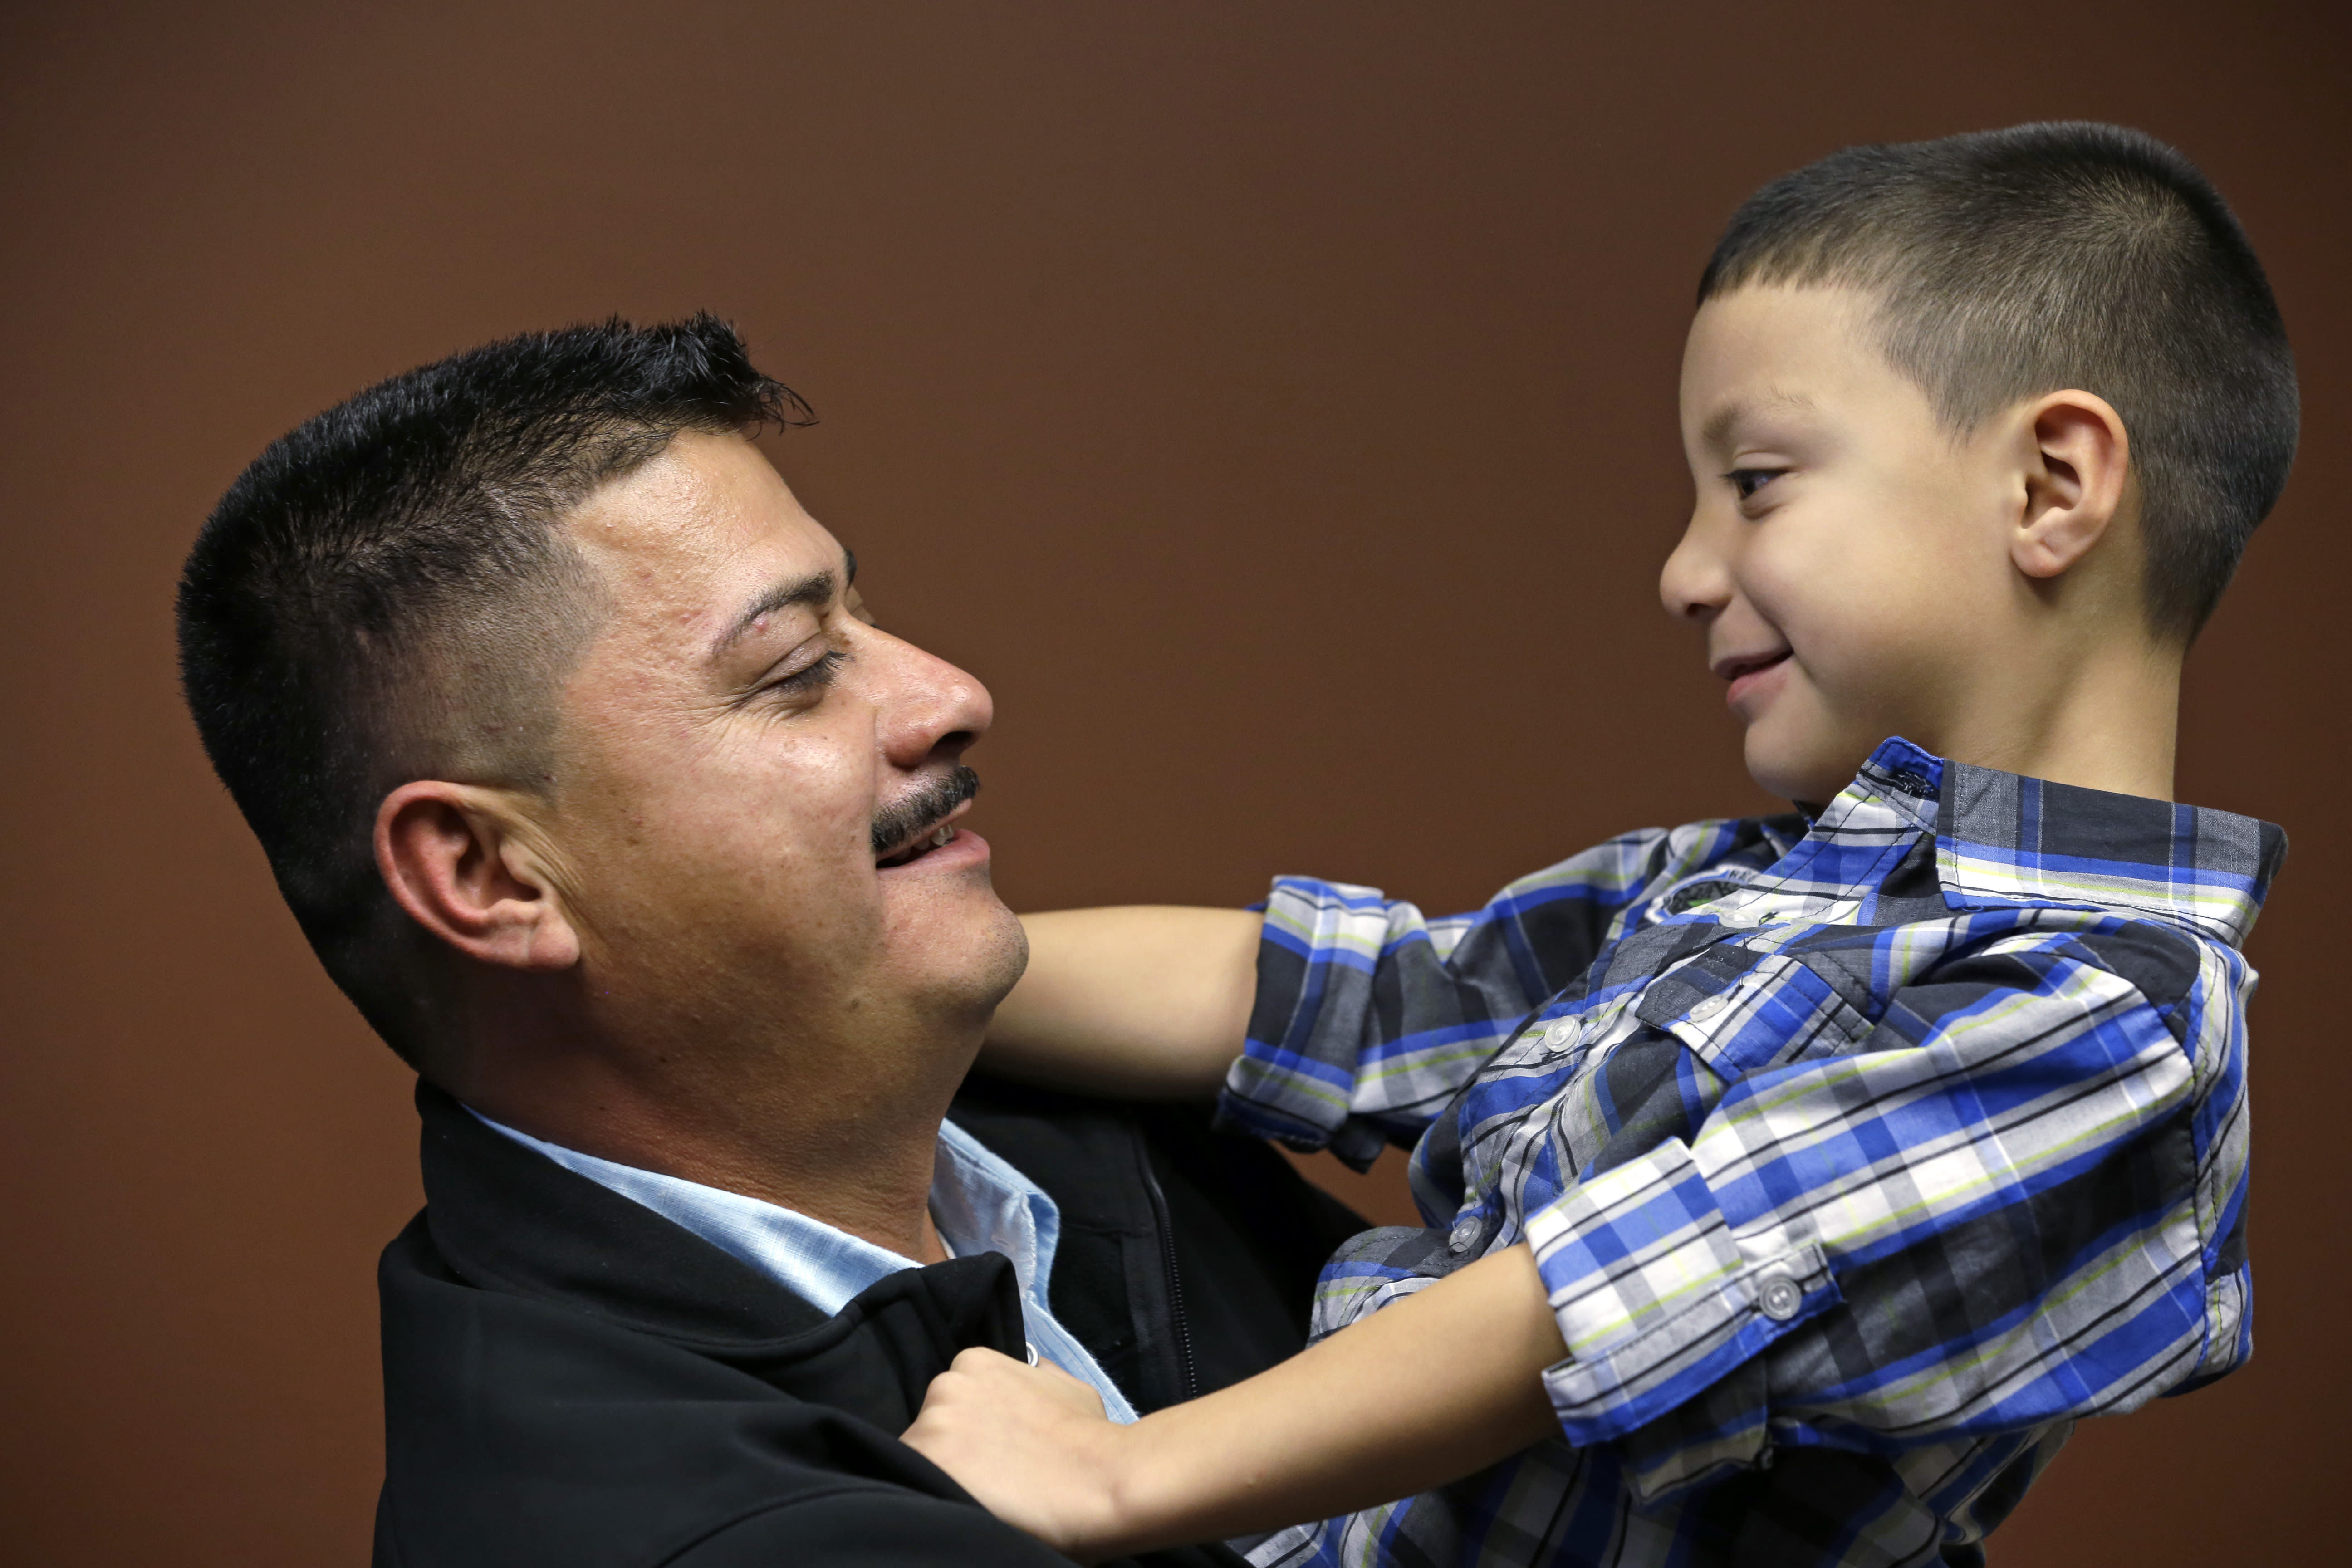 FILE - In this Oct. 17, 2014, file photo, Ignacio Lanuza holds his son, Isaiah, 4, as he has his photo taken in Seattle. A federal judge on Tuesday, Oct. 29, 2019, criticized the Justice Department for seeking legal fees from Lanuza, a Mexican immigrant who was the victim of a forgery by a government lawyer. (AP Photo/Elaine Thompson, File)